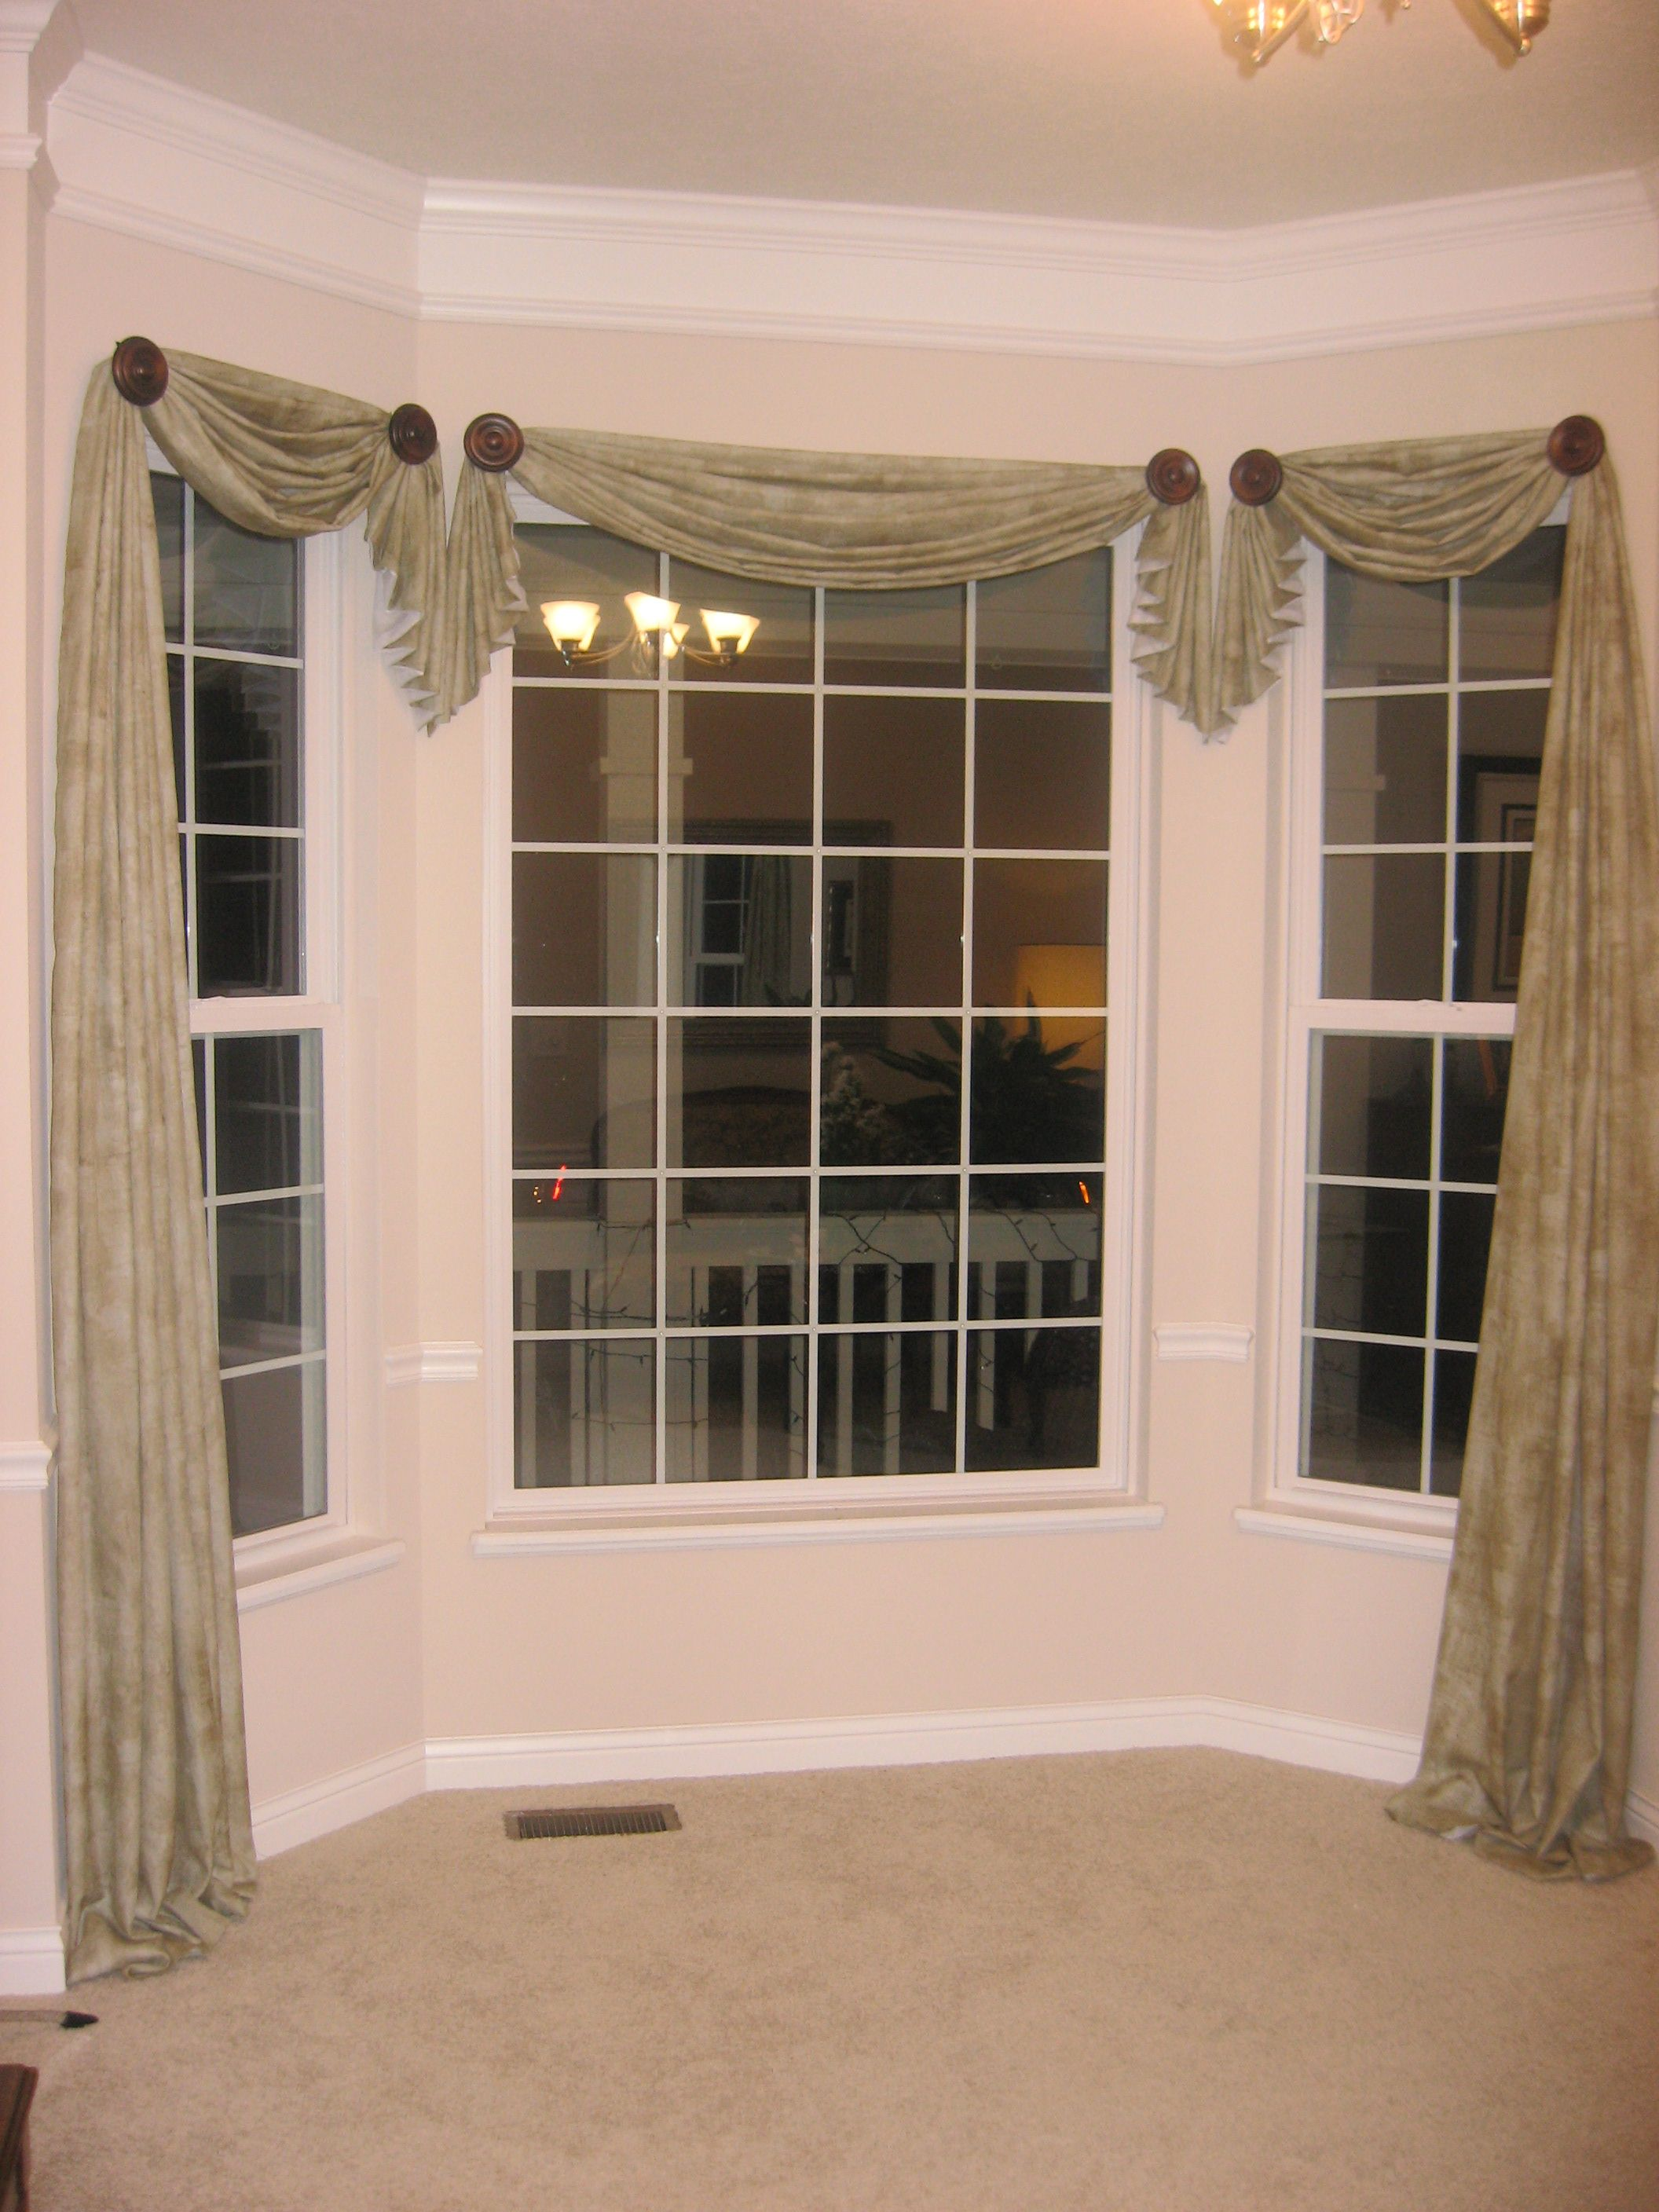 bay window design creativity window scarf scarf design and window bay window design creativity